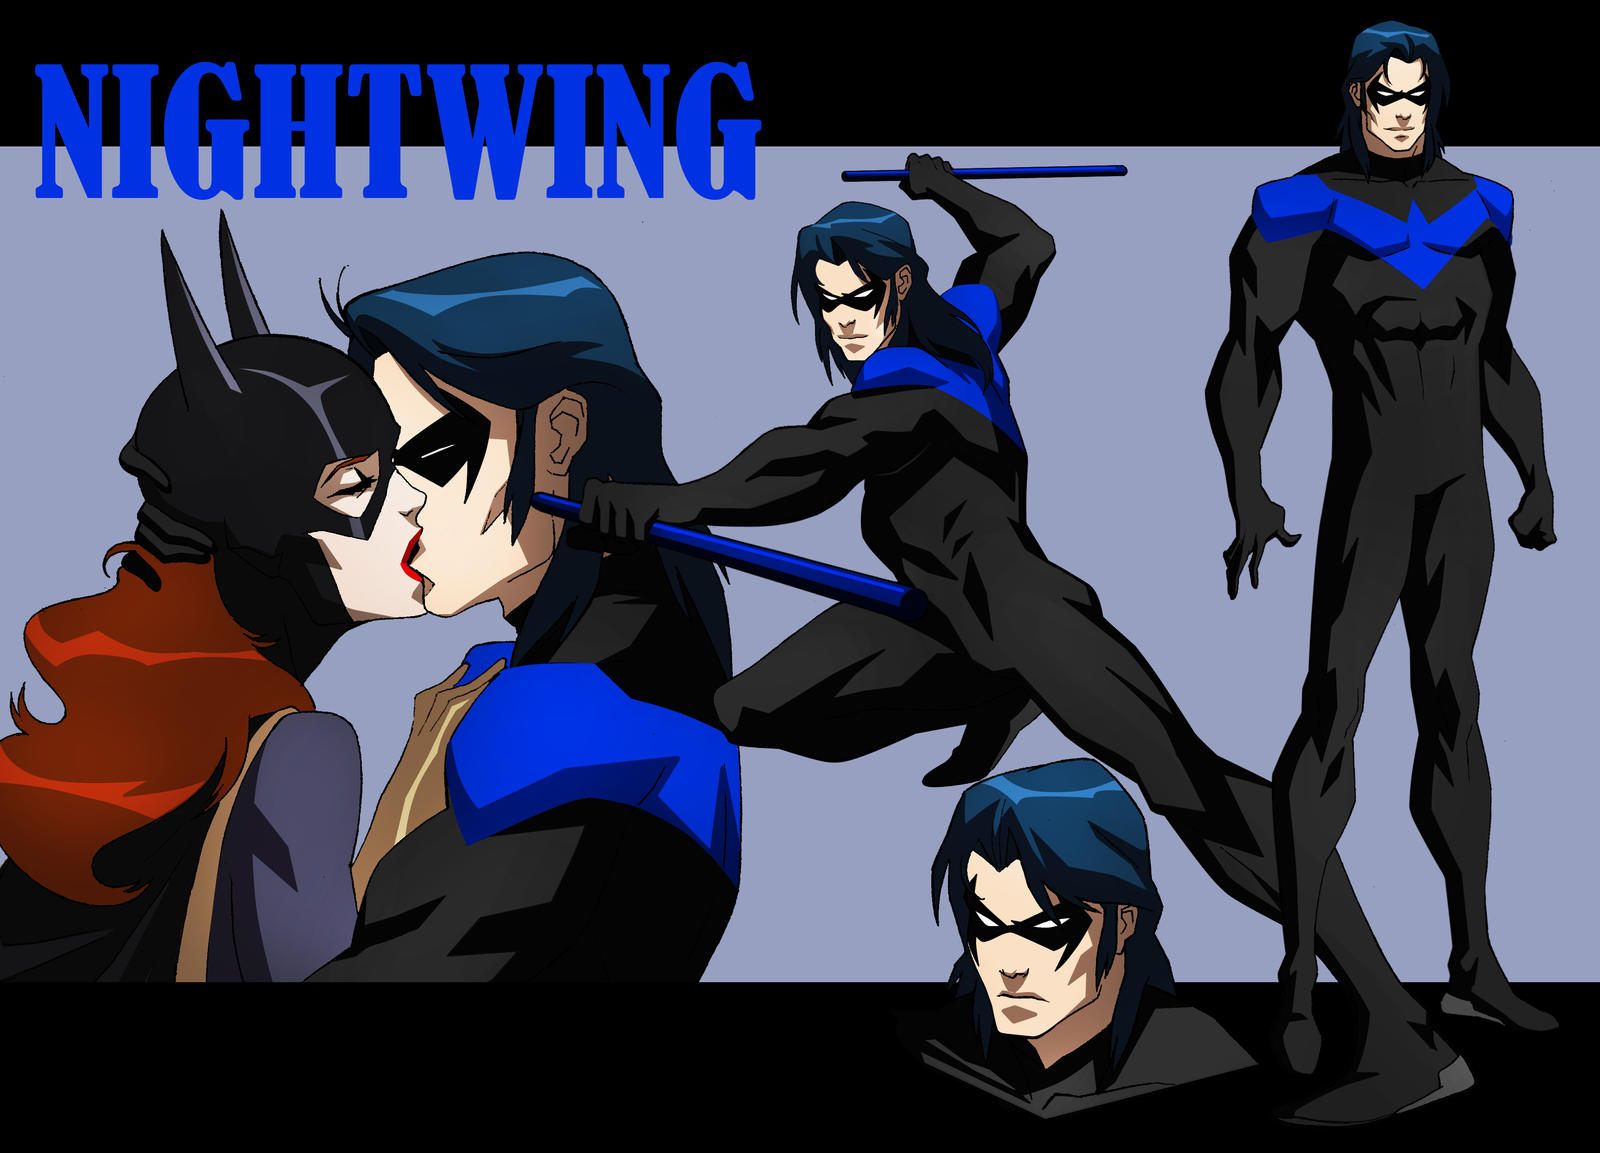 Nightwing animated by chubeto on deviantart - Pictures of nightwing from young justice ...